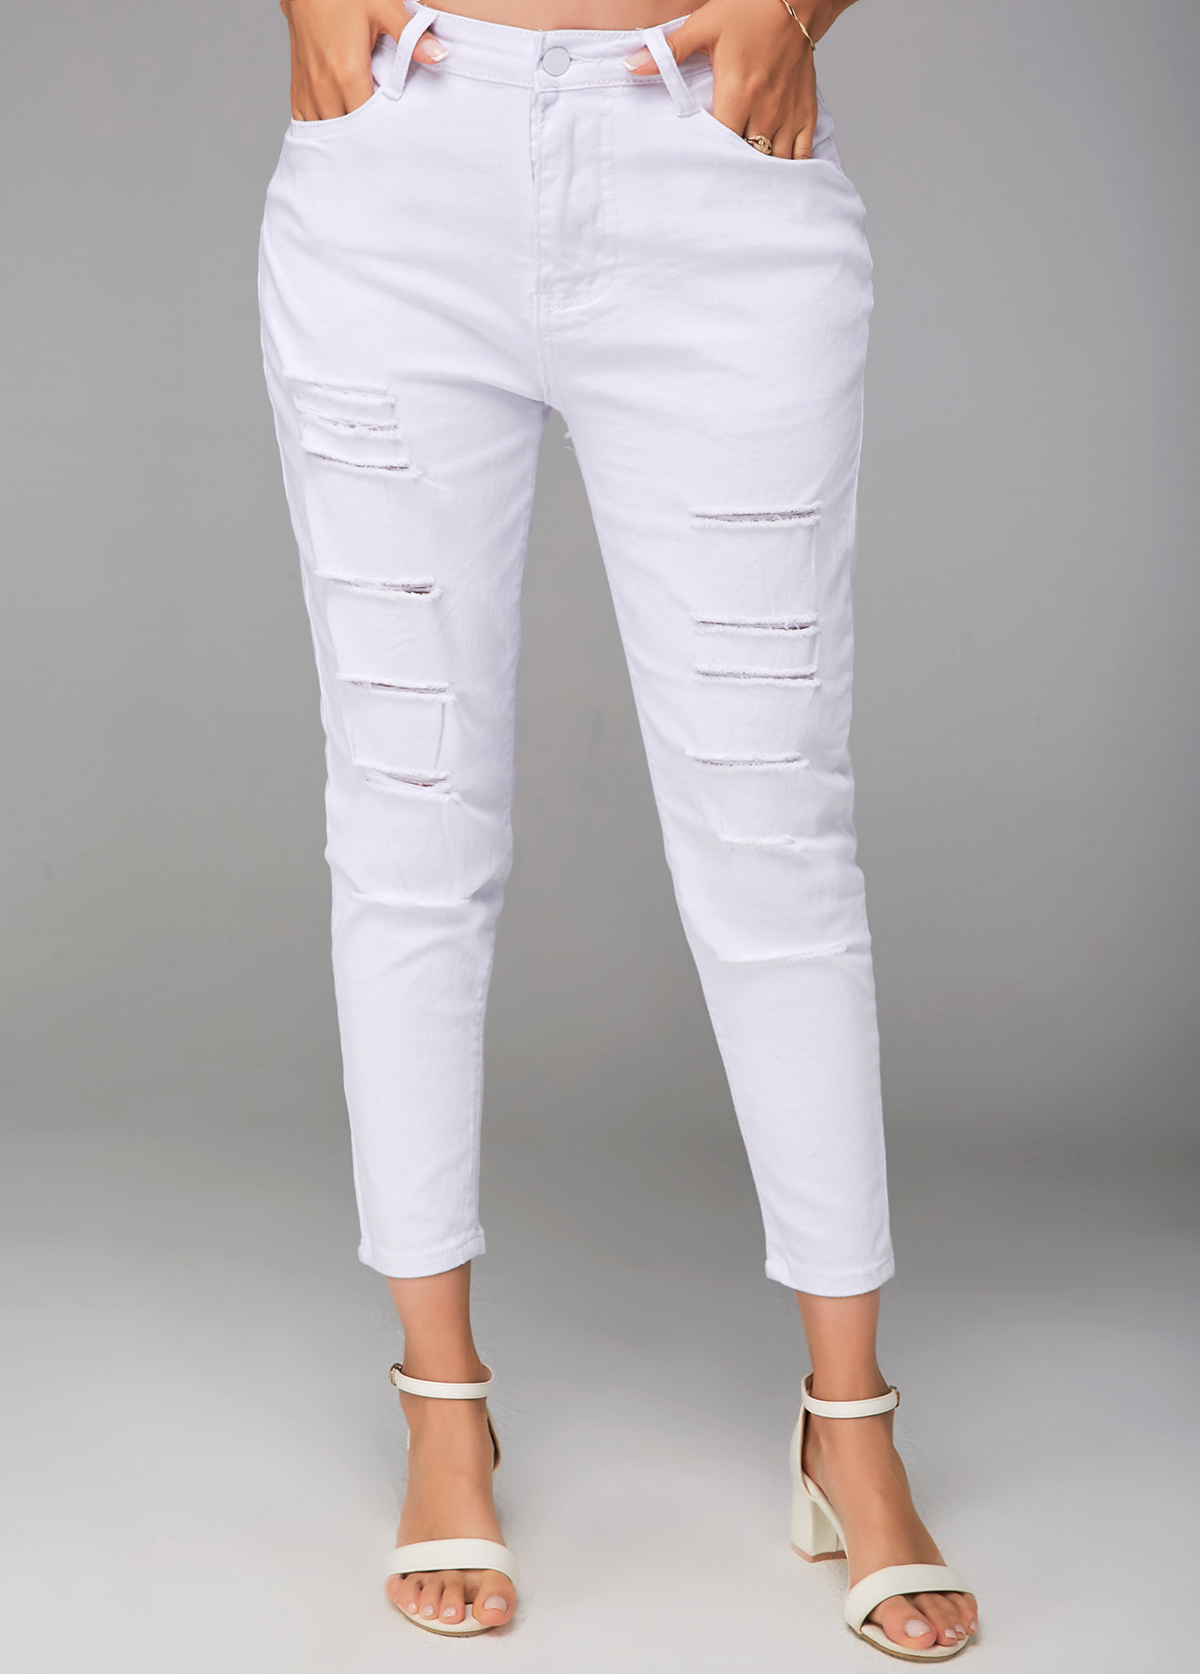 Cropped Shredded White Zipper Closure Pants